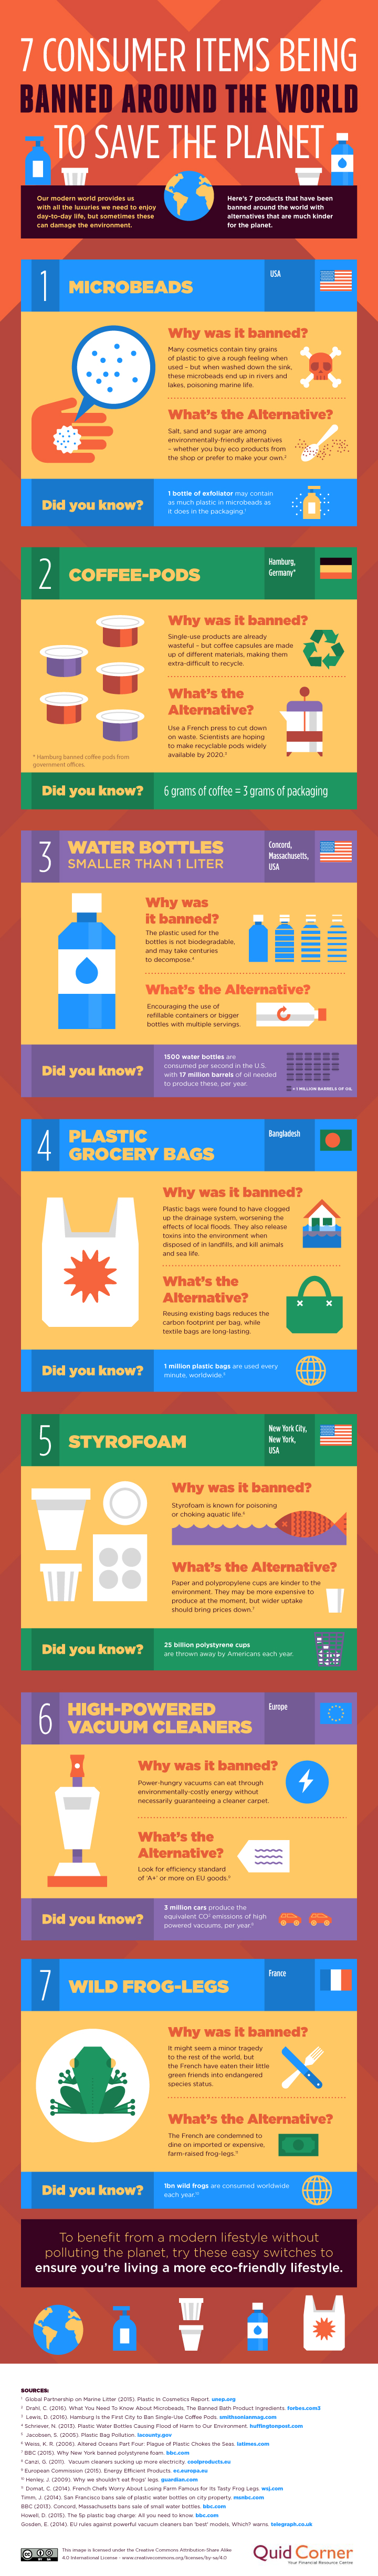 7-Consumer-Items-Being-Banned-Around-the-World-to-Save-the-Planet-DV4